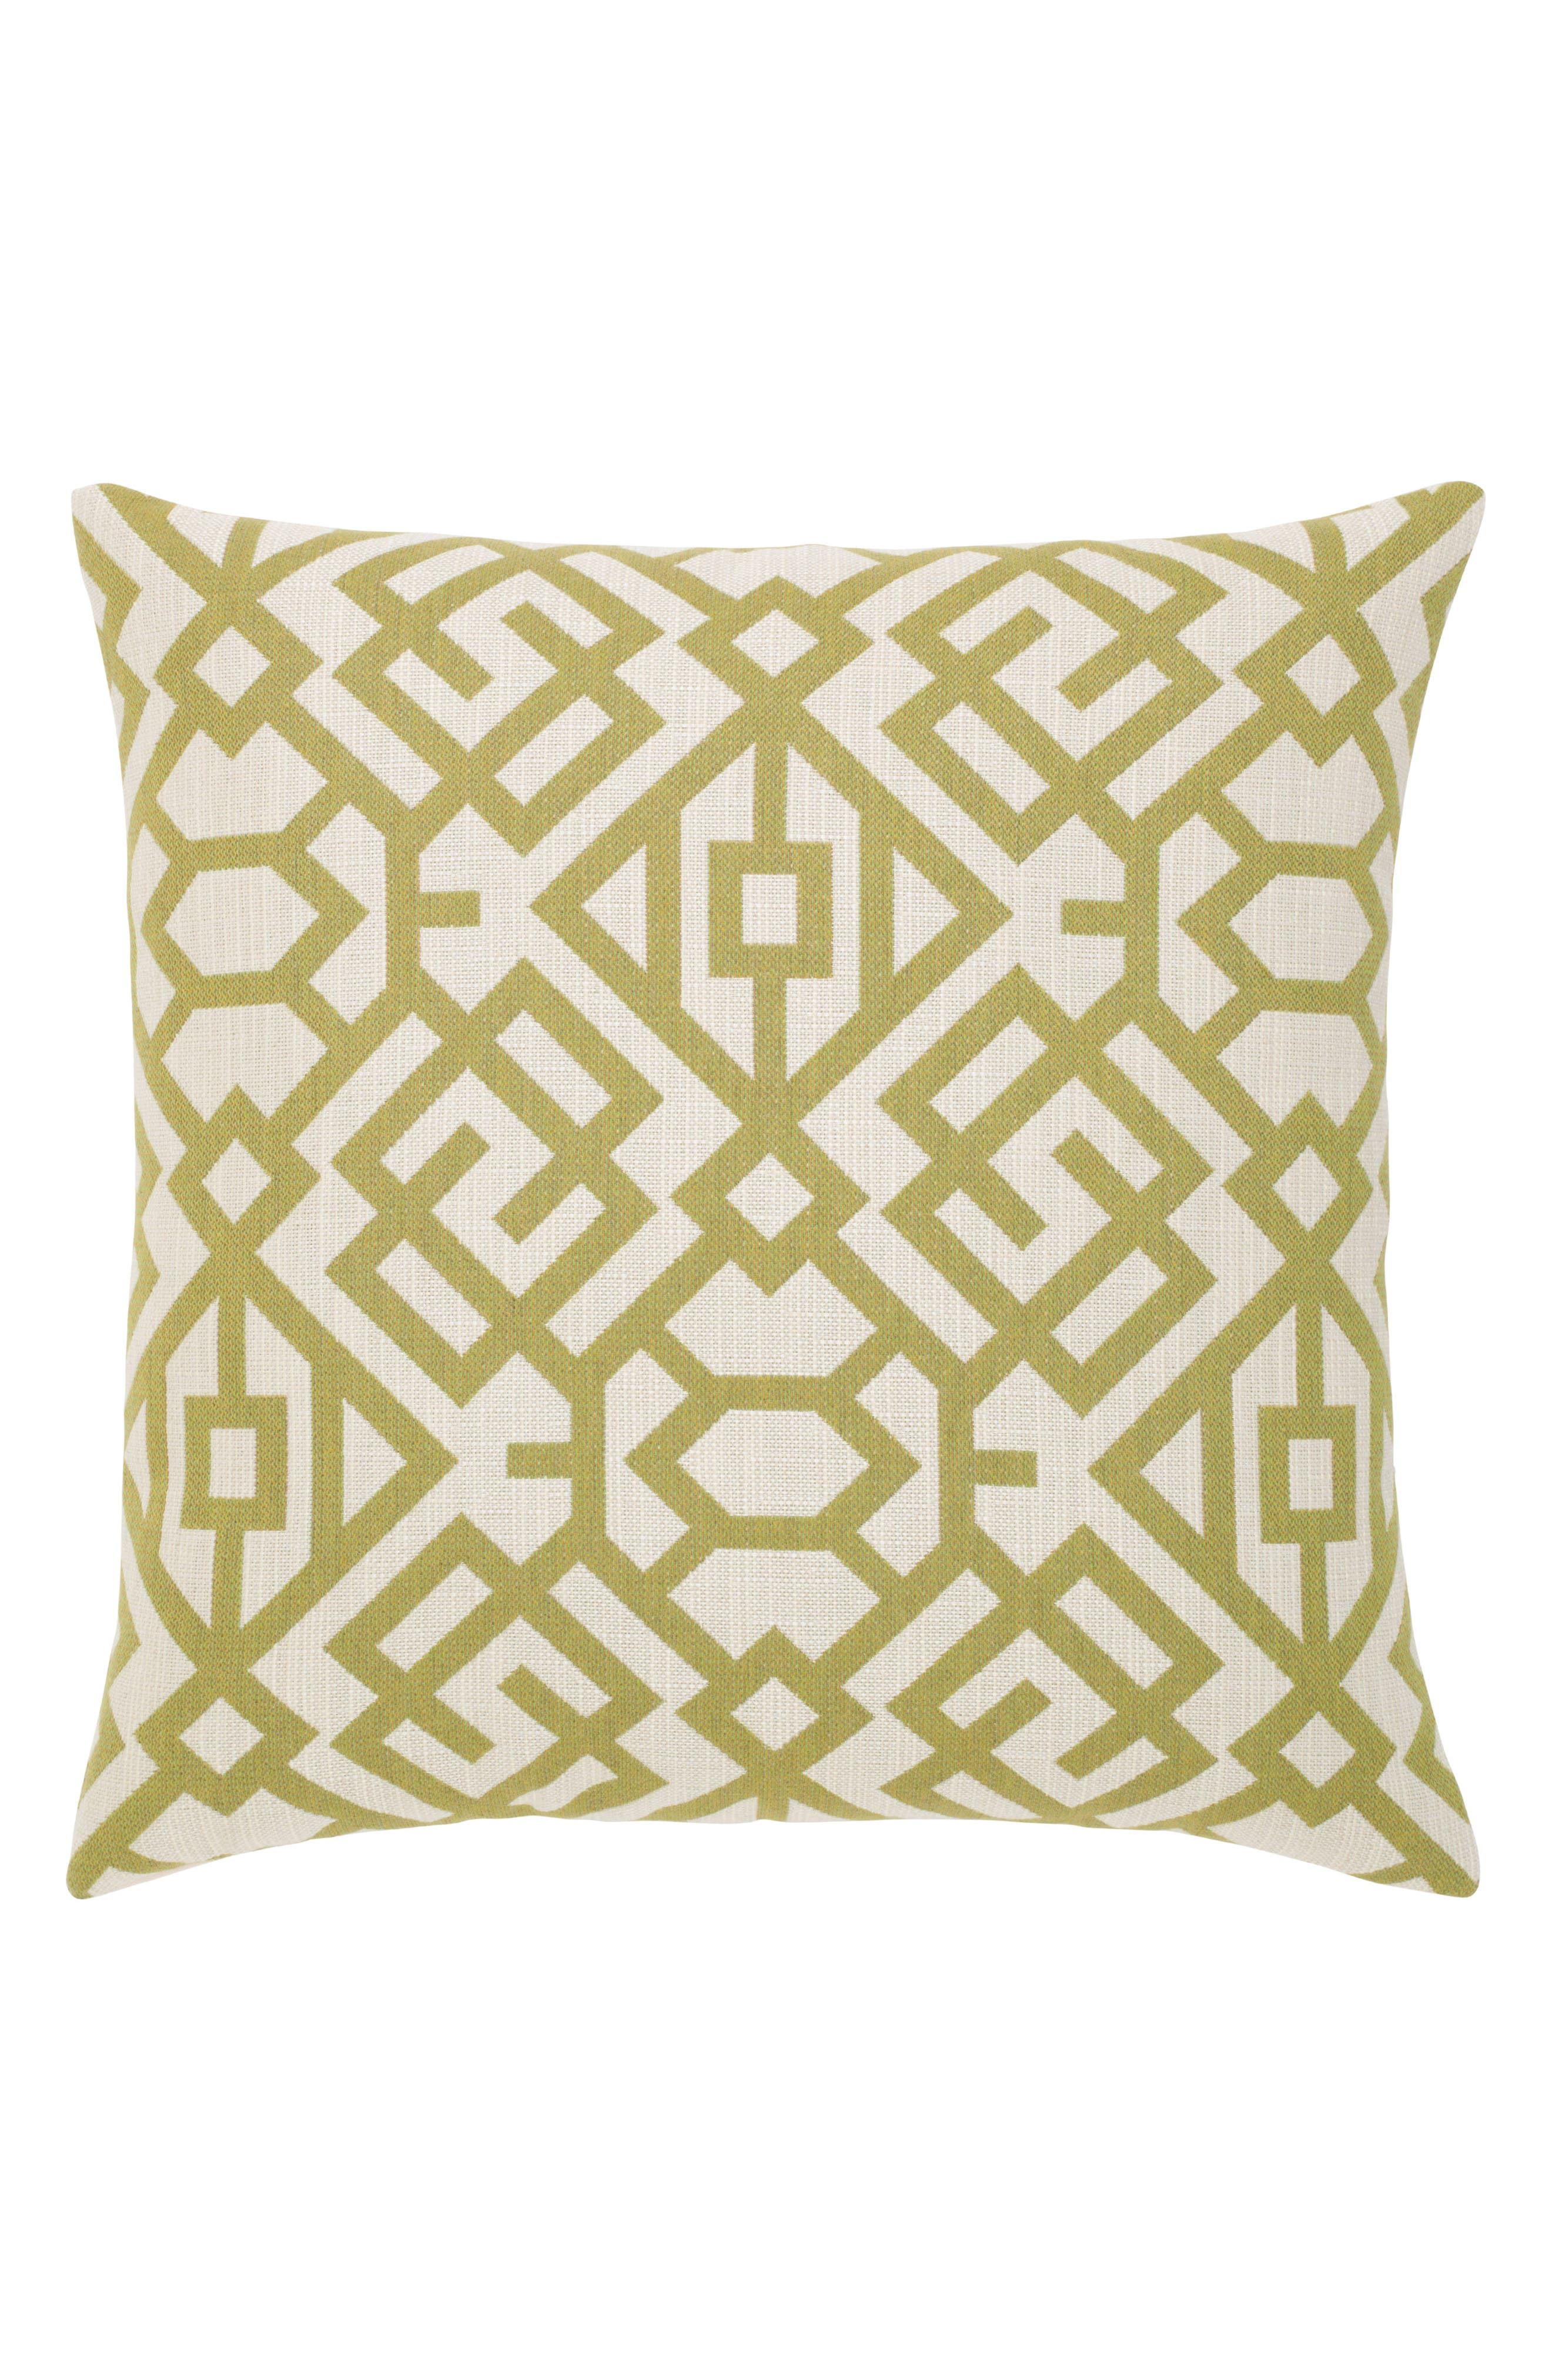 ELAINE SMITH Fern Gate Indoor/Outdoor Accent Pillow, Main, color, 300